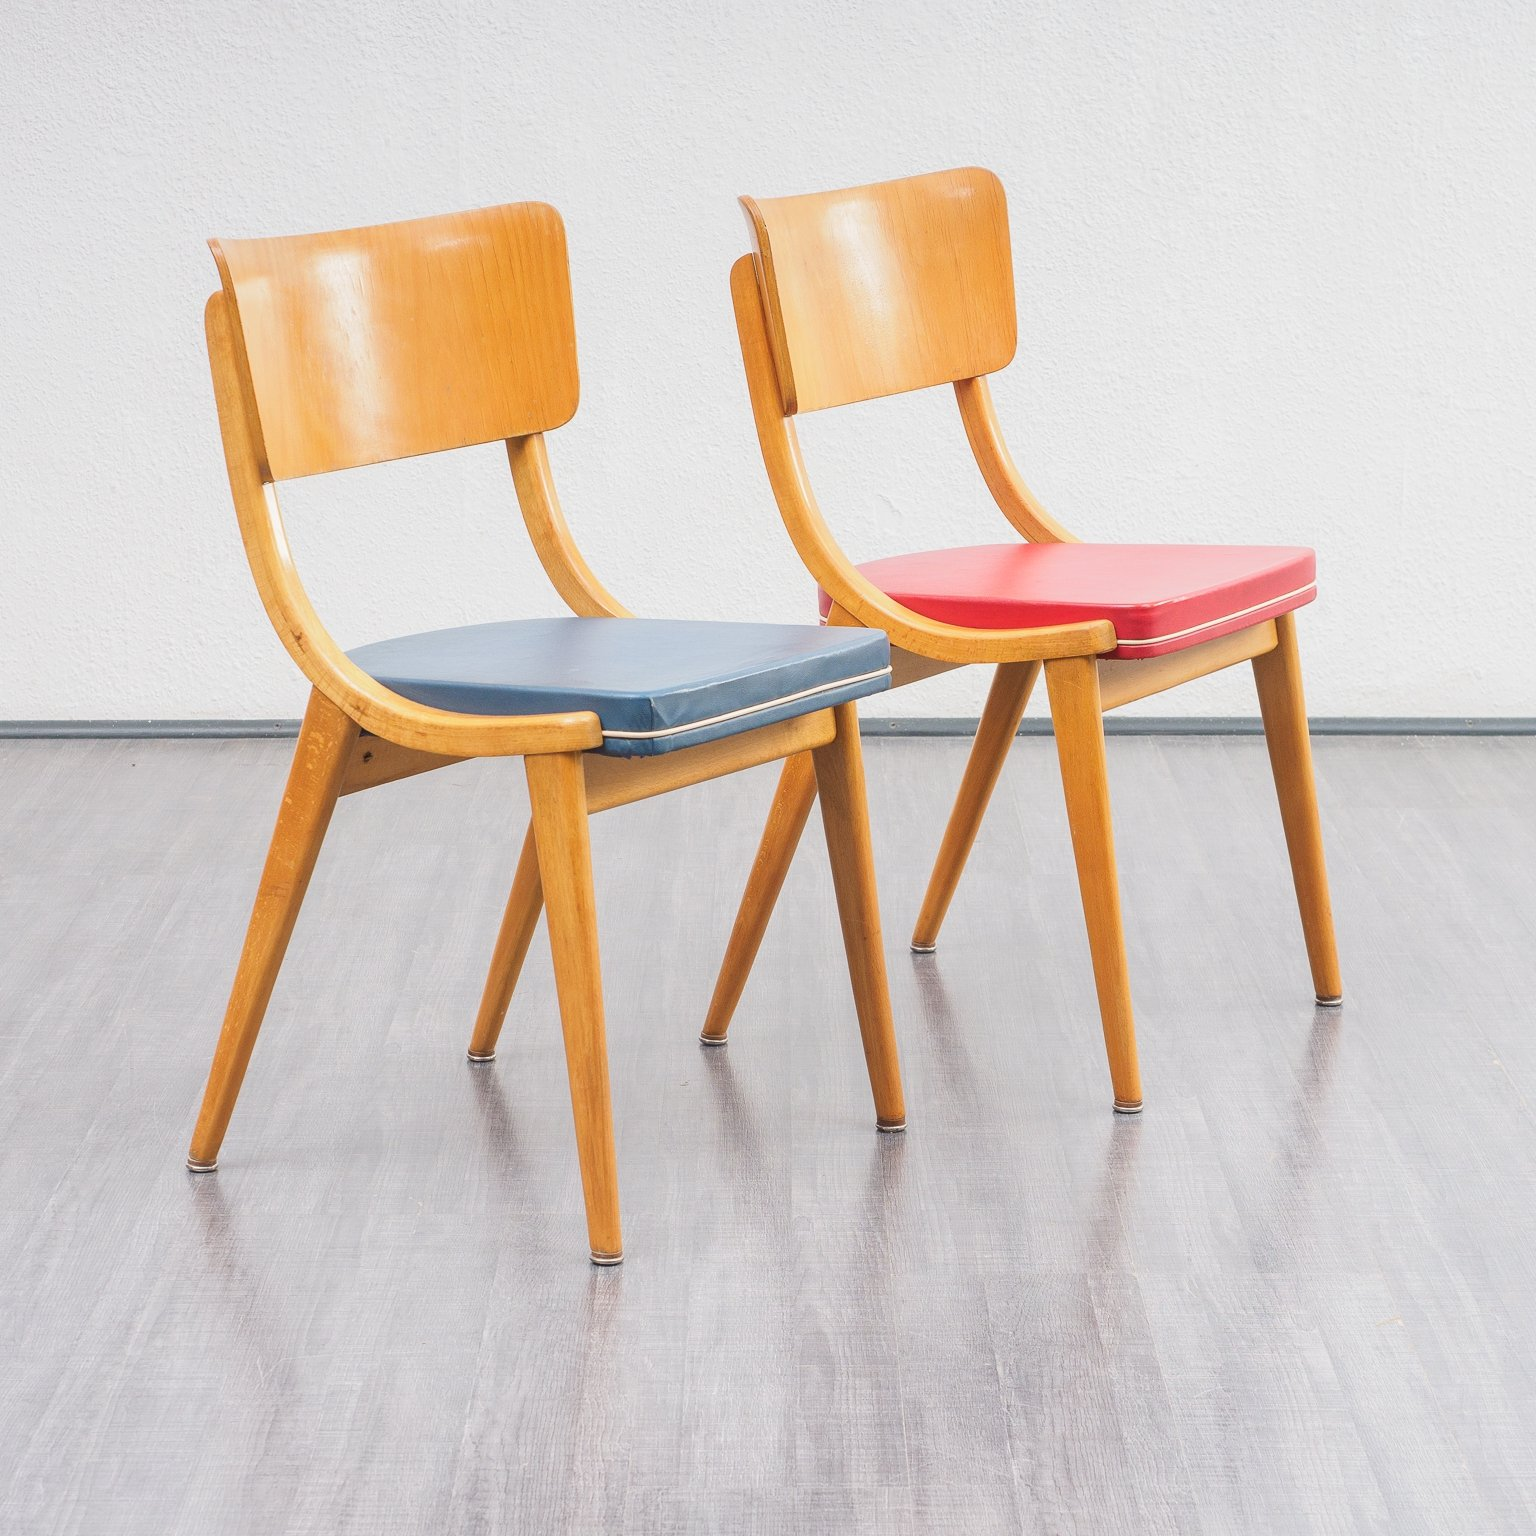 Vintage Midcentury Set Of Kitchen Chairs In Solid Beech 1950s 110204